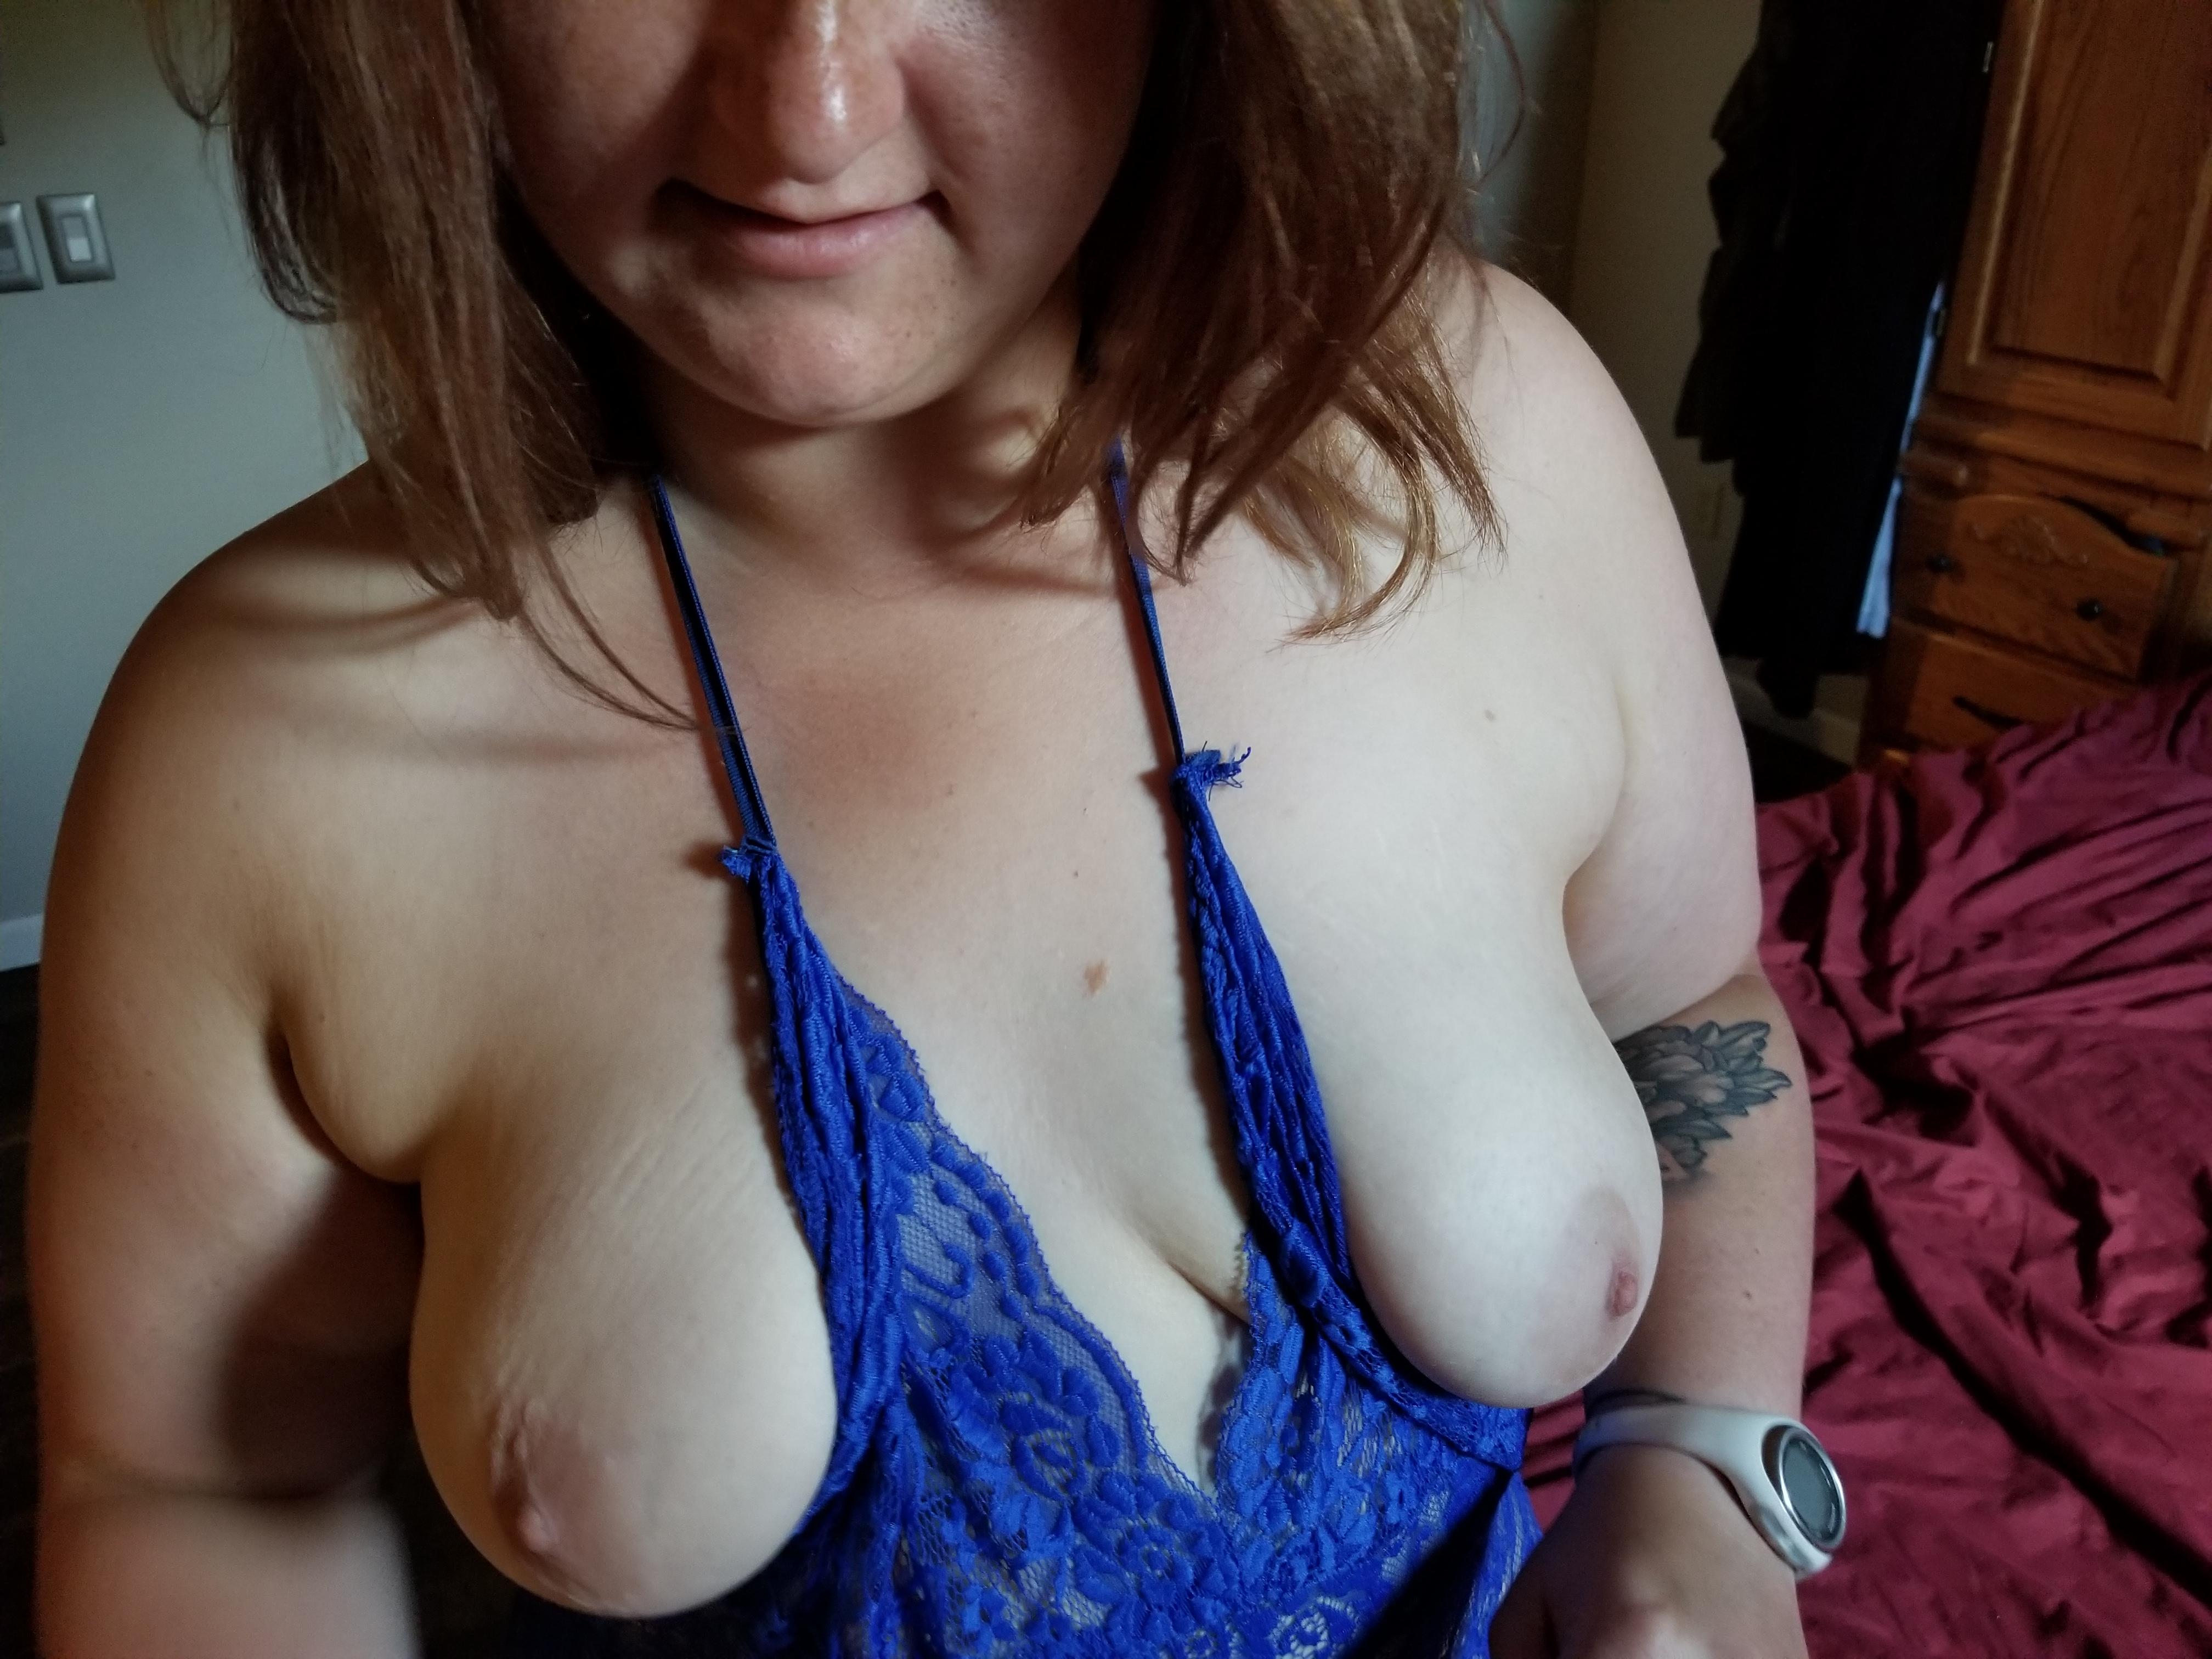 30 Year Old Porn image] 30 year old milf tits porn pic - eporner